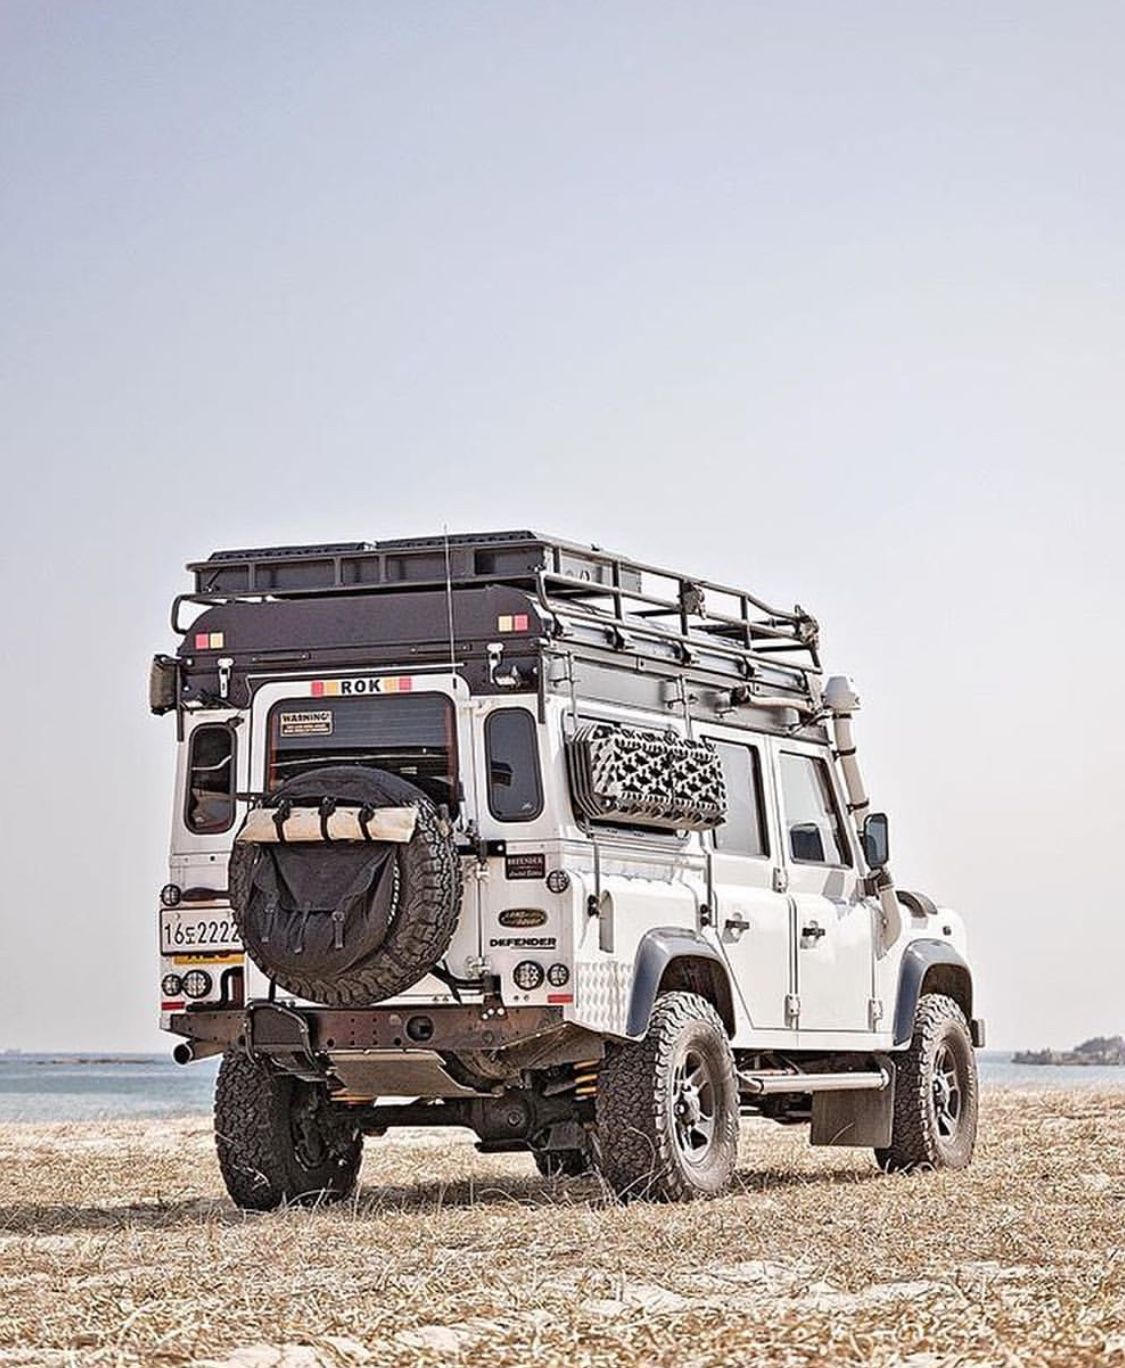 Pin by Geoff Boss on Land Rover Land rover, Land rover